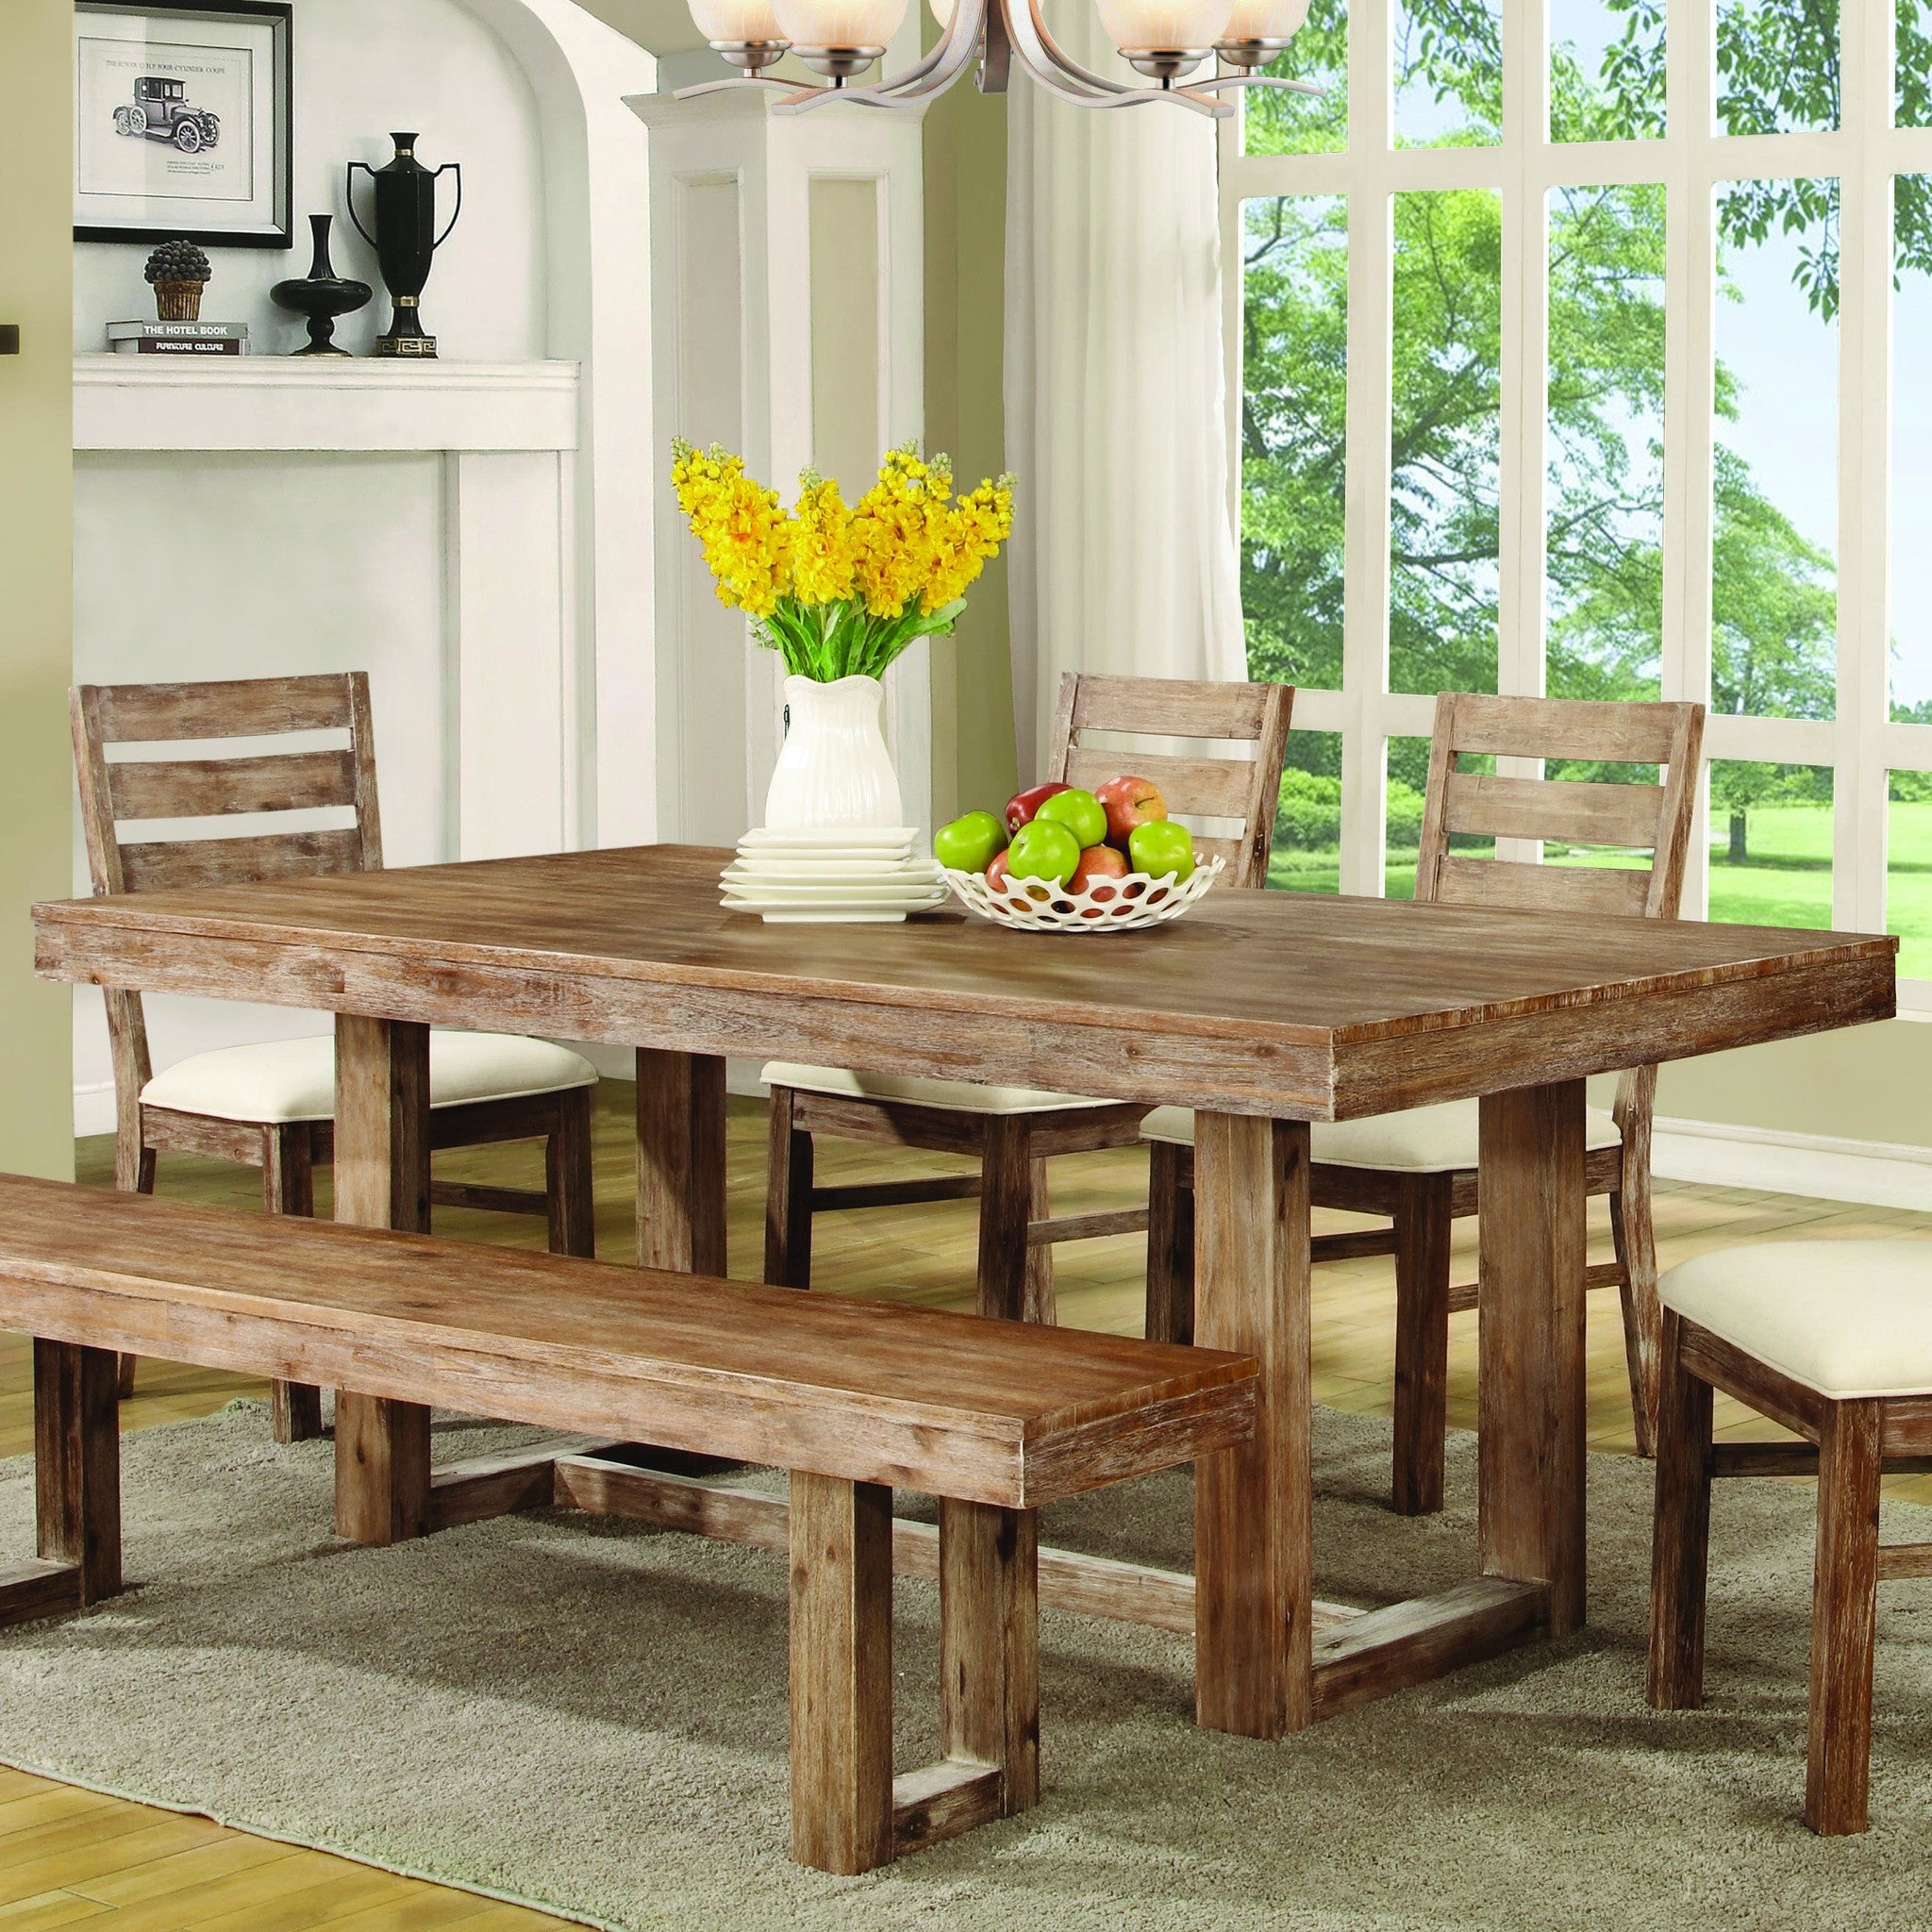 Incroyable Elmwood Rustic Dining Room · Elmwood Rustic Dining Table ...